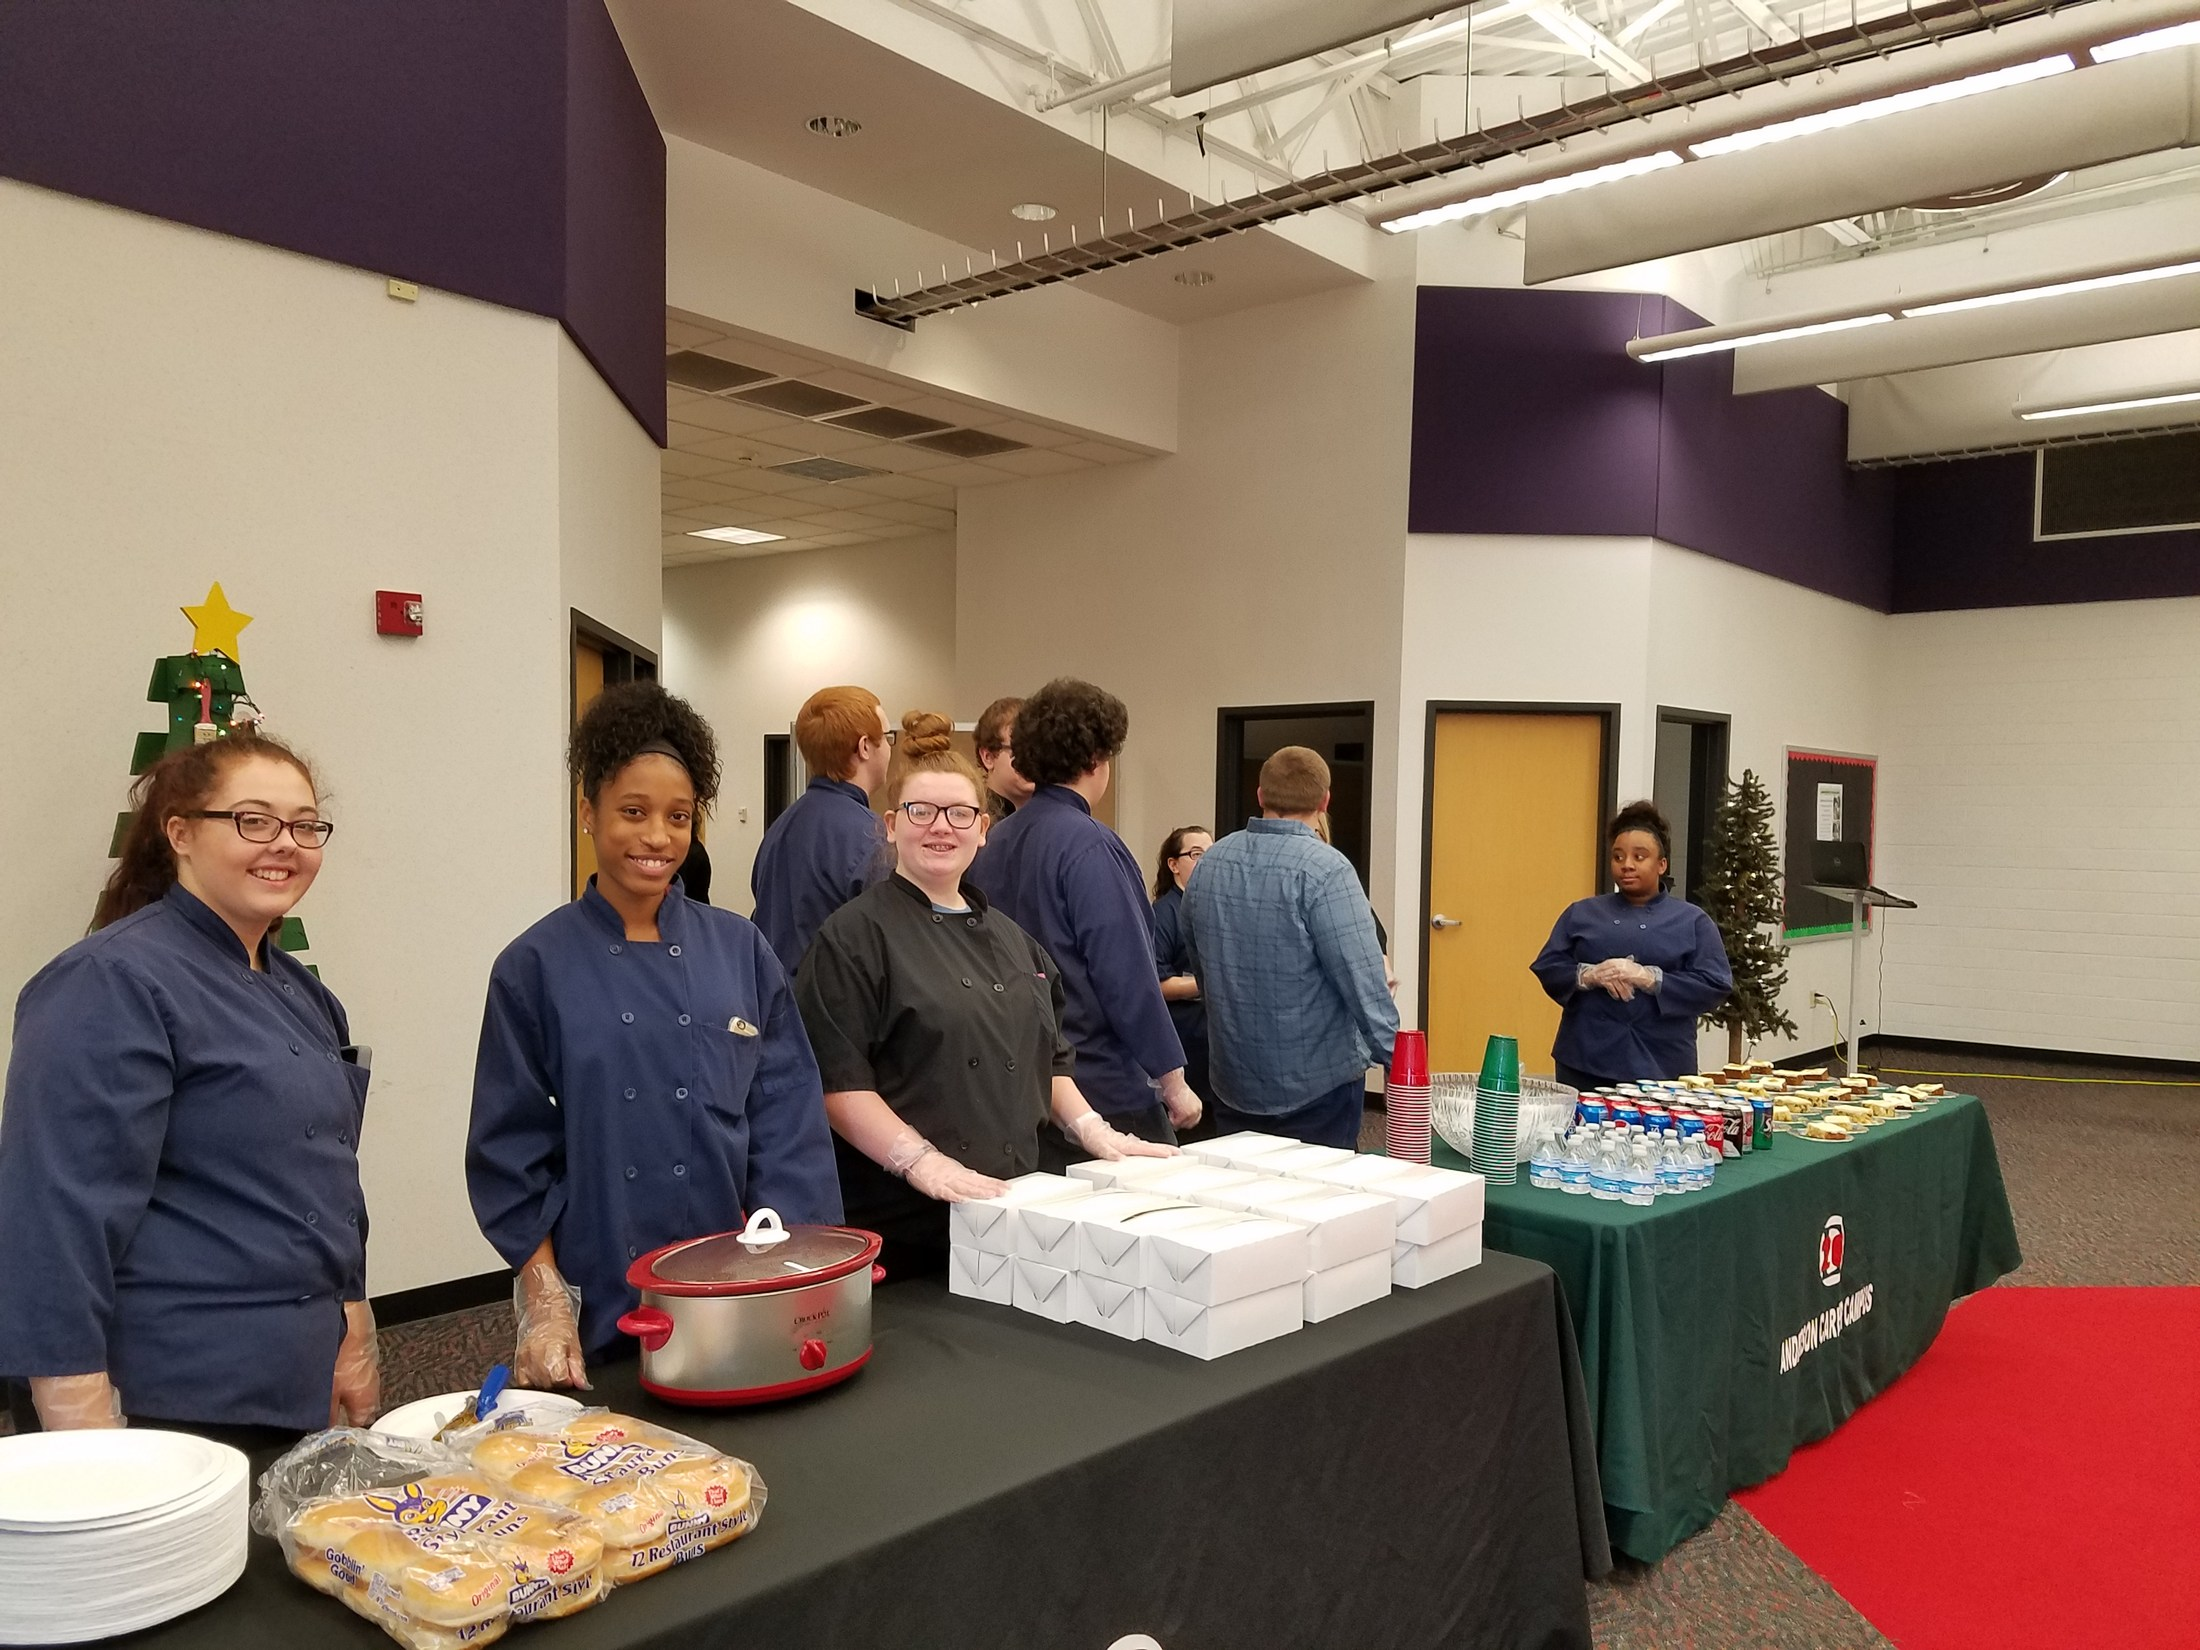 Students serving food